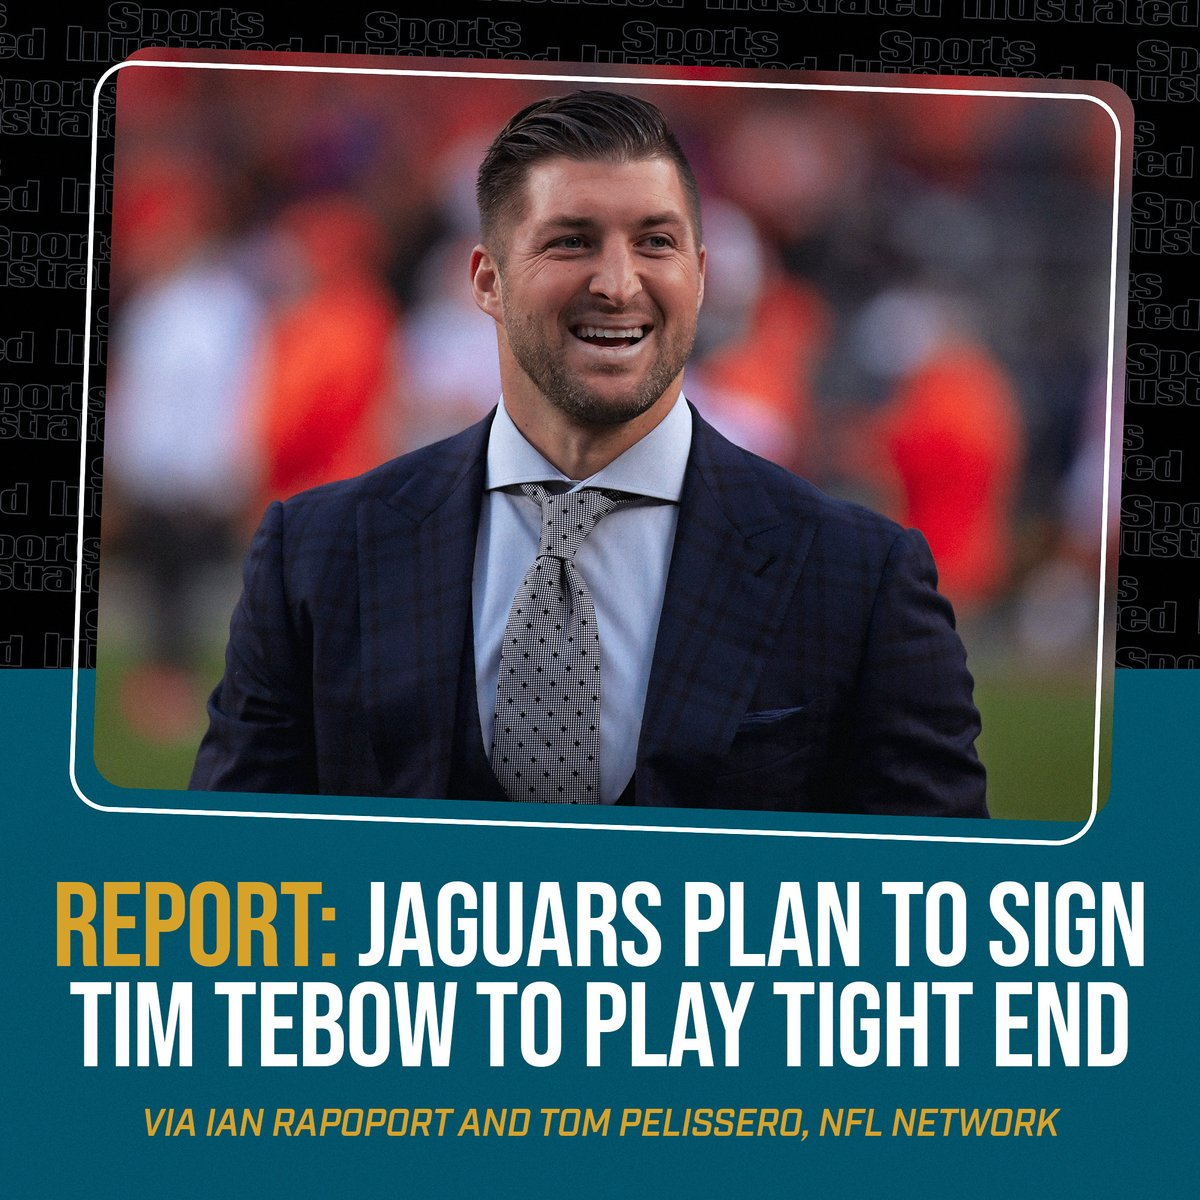 🚨 IT'S HAPPENING 🚨  Tim Tebow is reportedly expected to reunite with Urban Meyer on the Jaguars as a tight end, per @RapSheet and @TomPelissero https://t.co/mSUrJ4rD6o